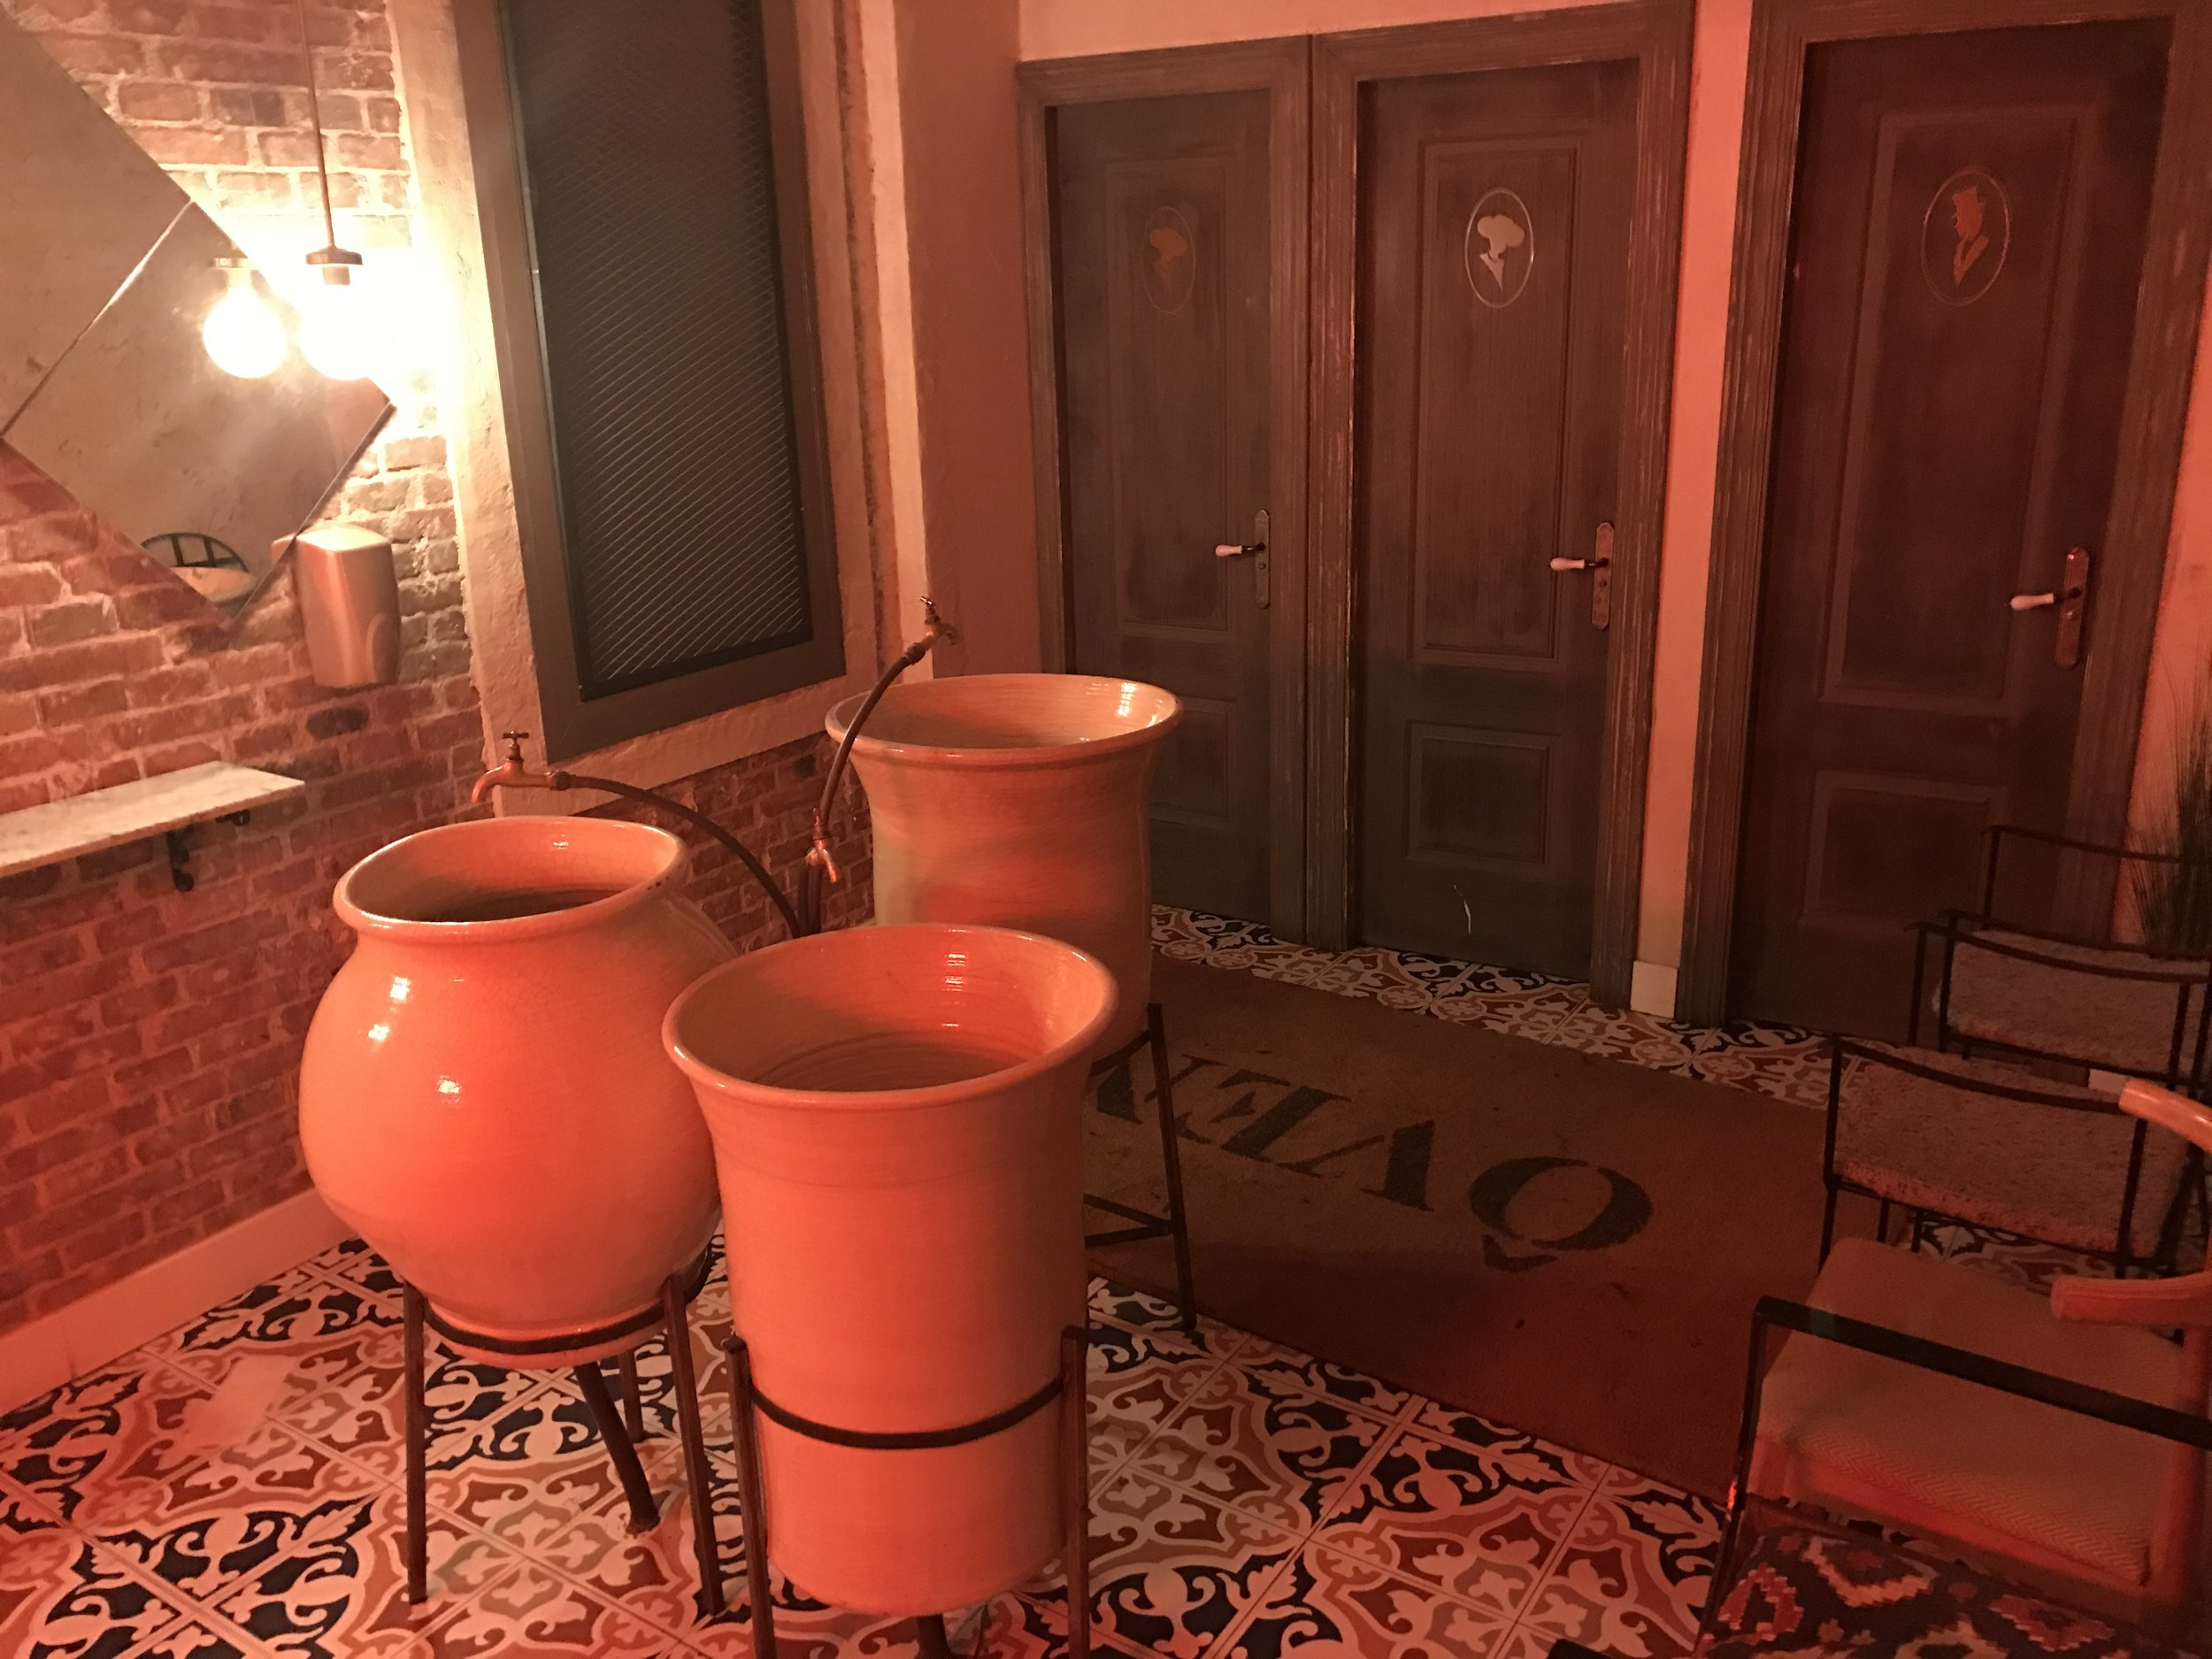 This was the bathroom. Which I had to take a picture of because these large urns are the sinks!